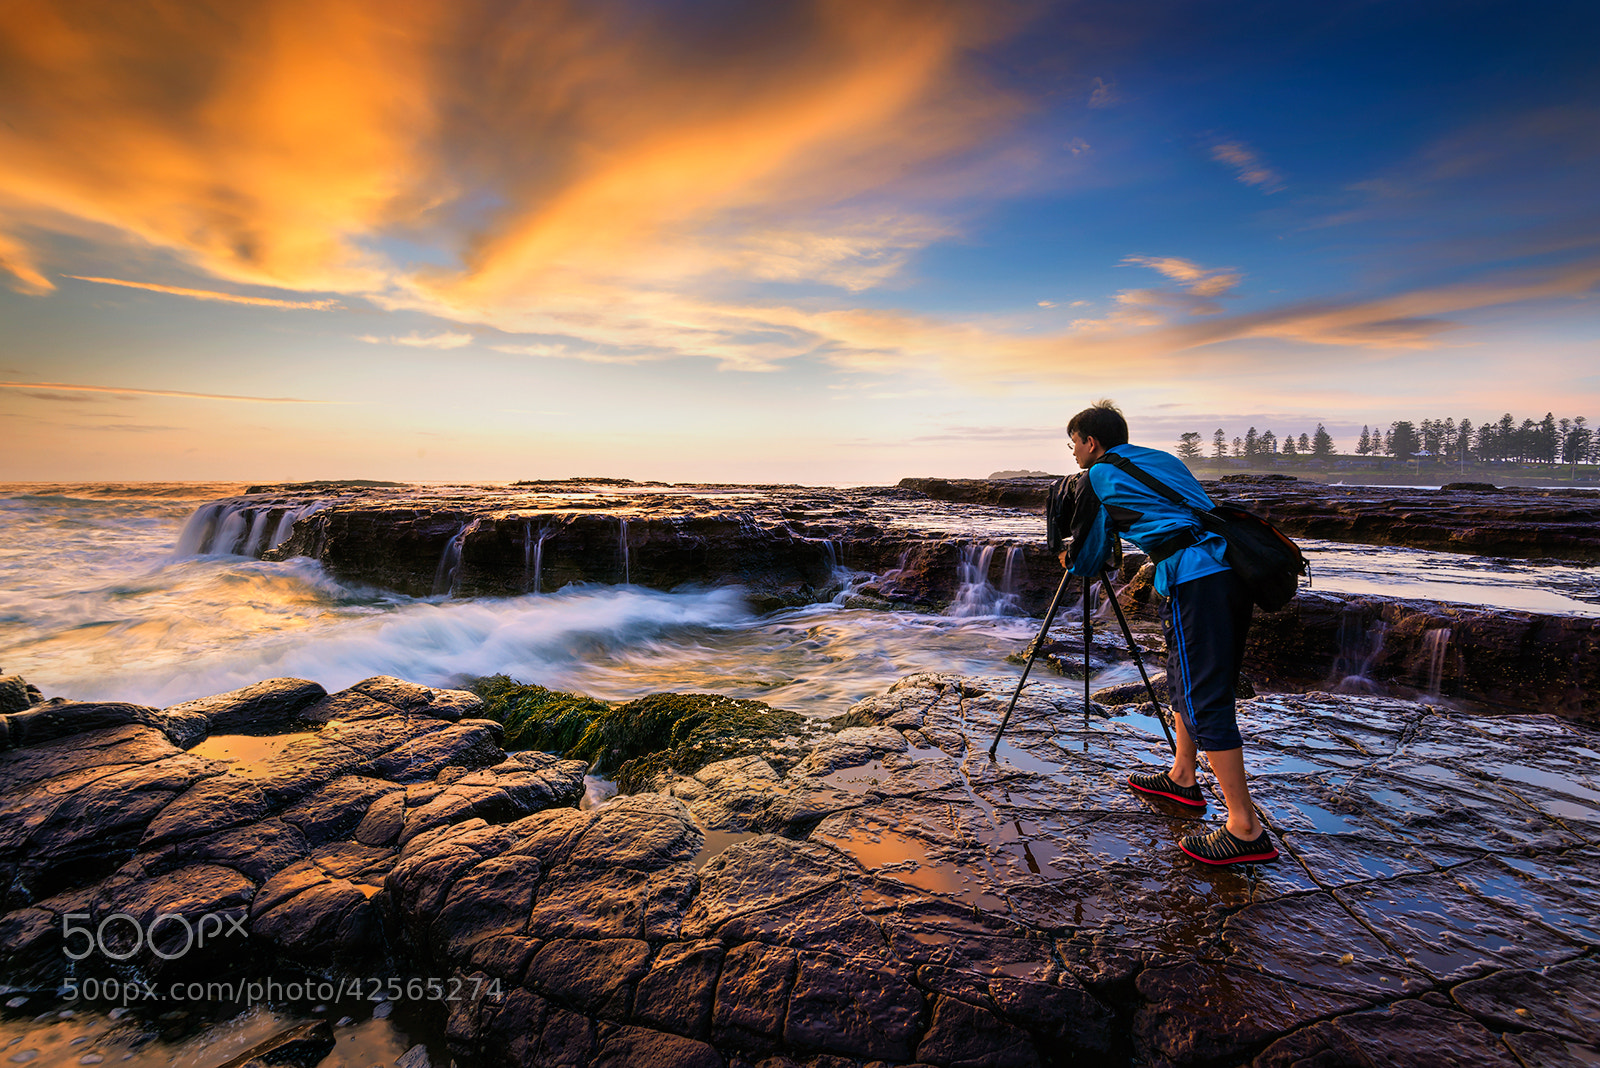 Photograph The Boss by Goff Kitsawad on 500px